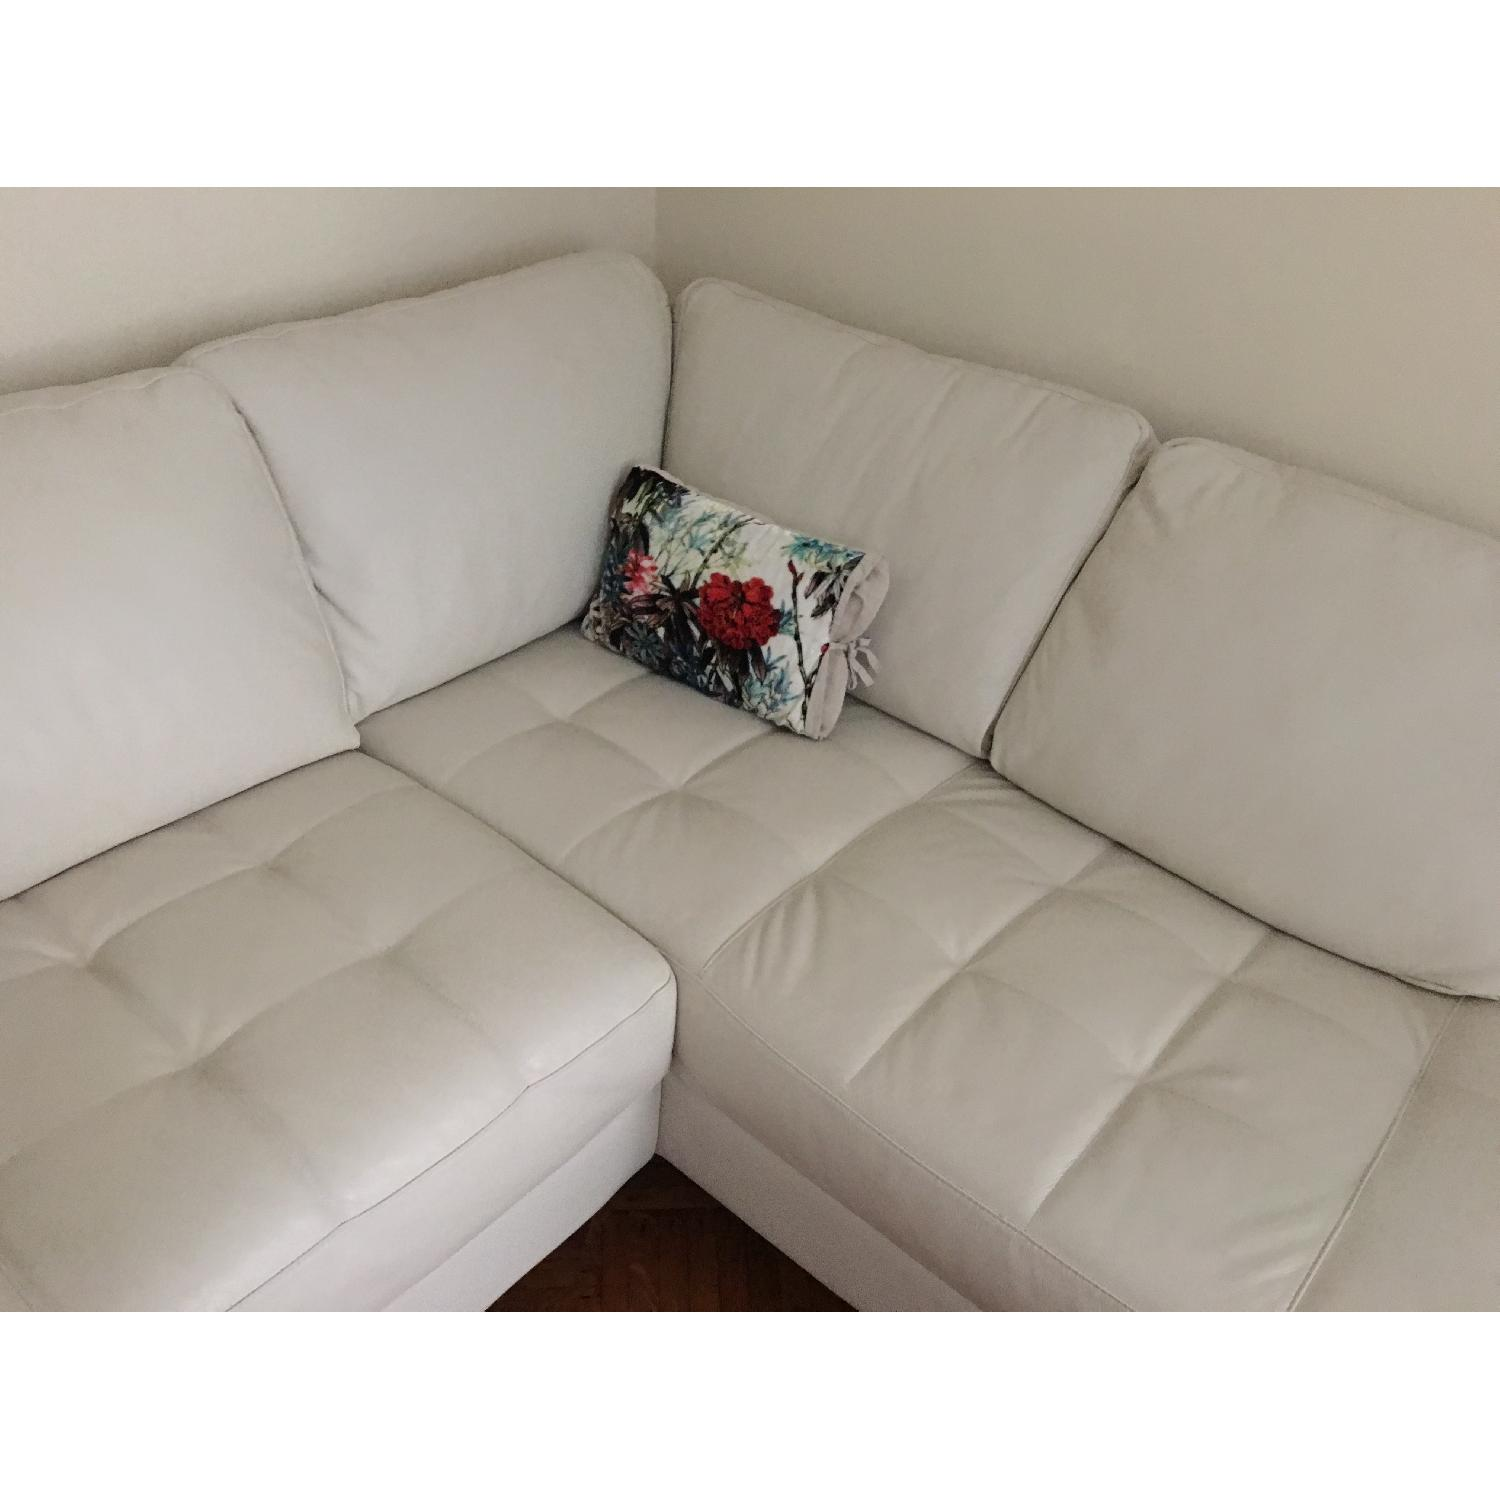 Macy's Italian Quilted Leather Sectional Sofa - image-3